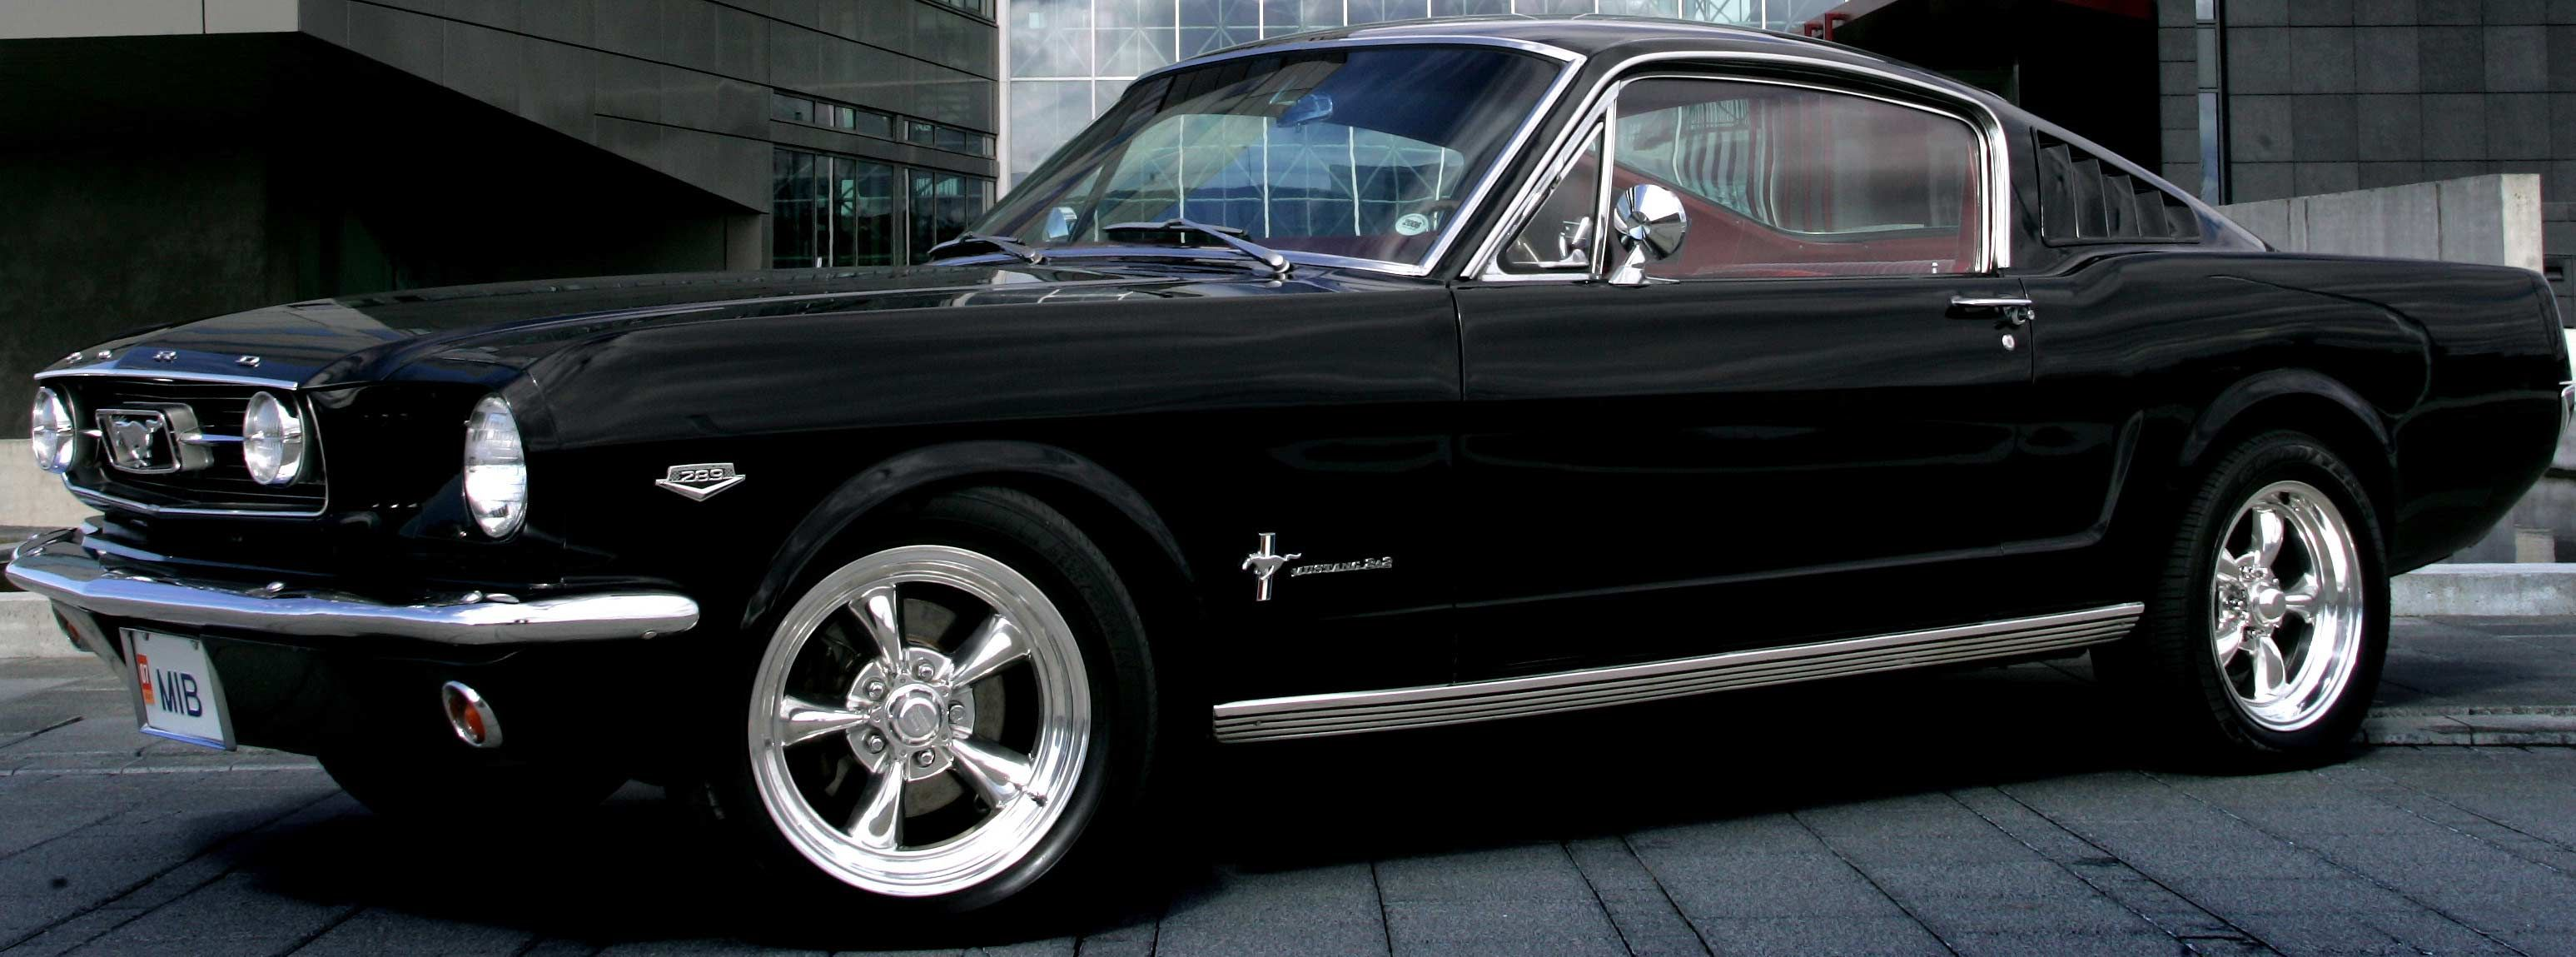 1964 1/2 Mustang VIN data - Page 6 - Ford Mustang Forums ...